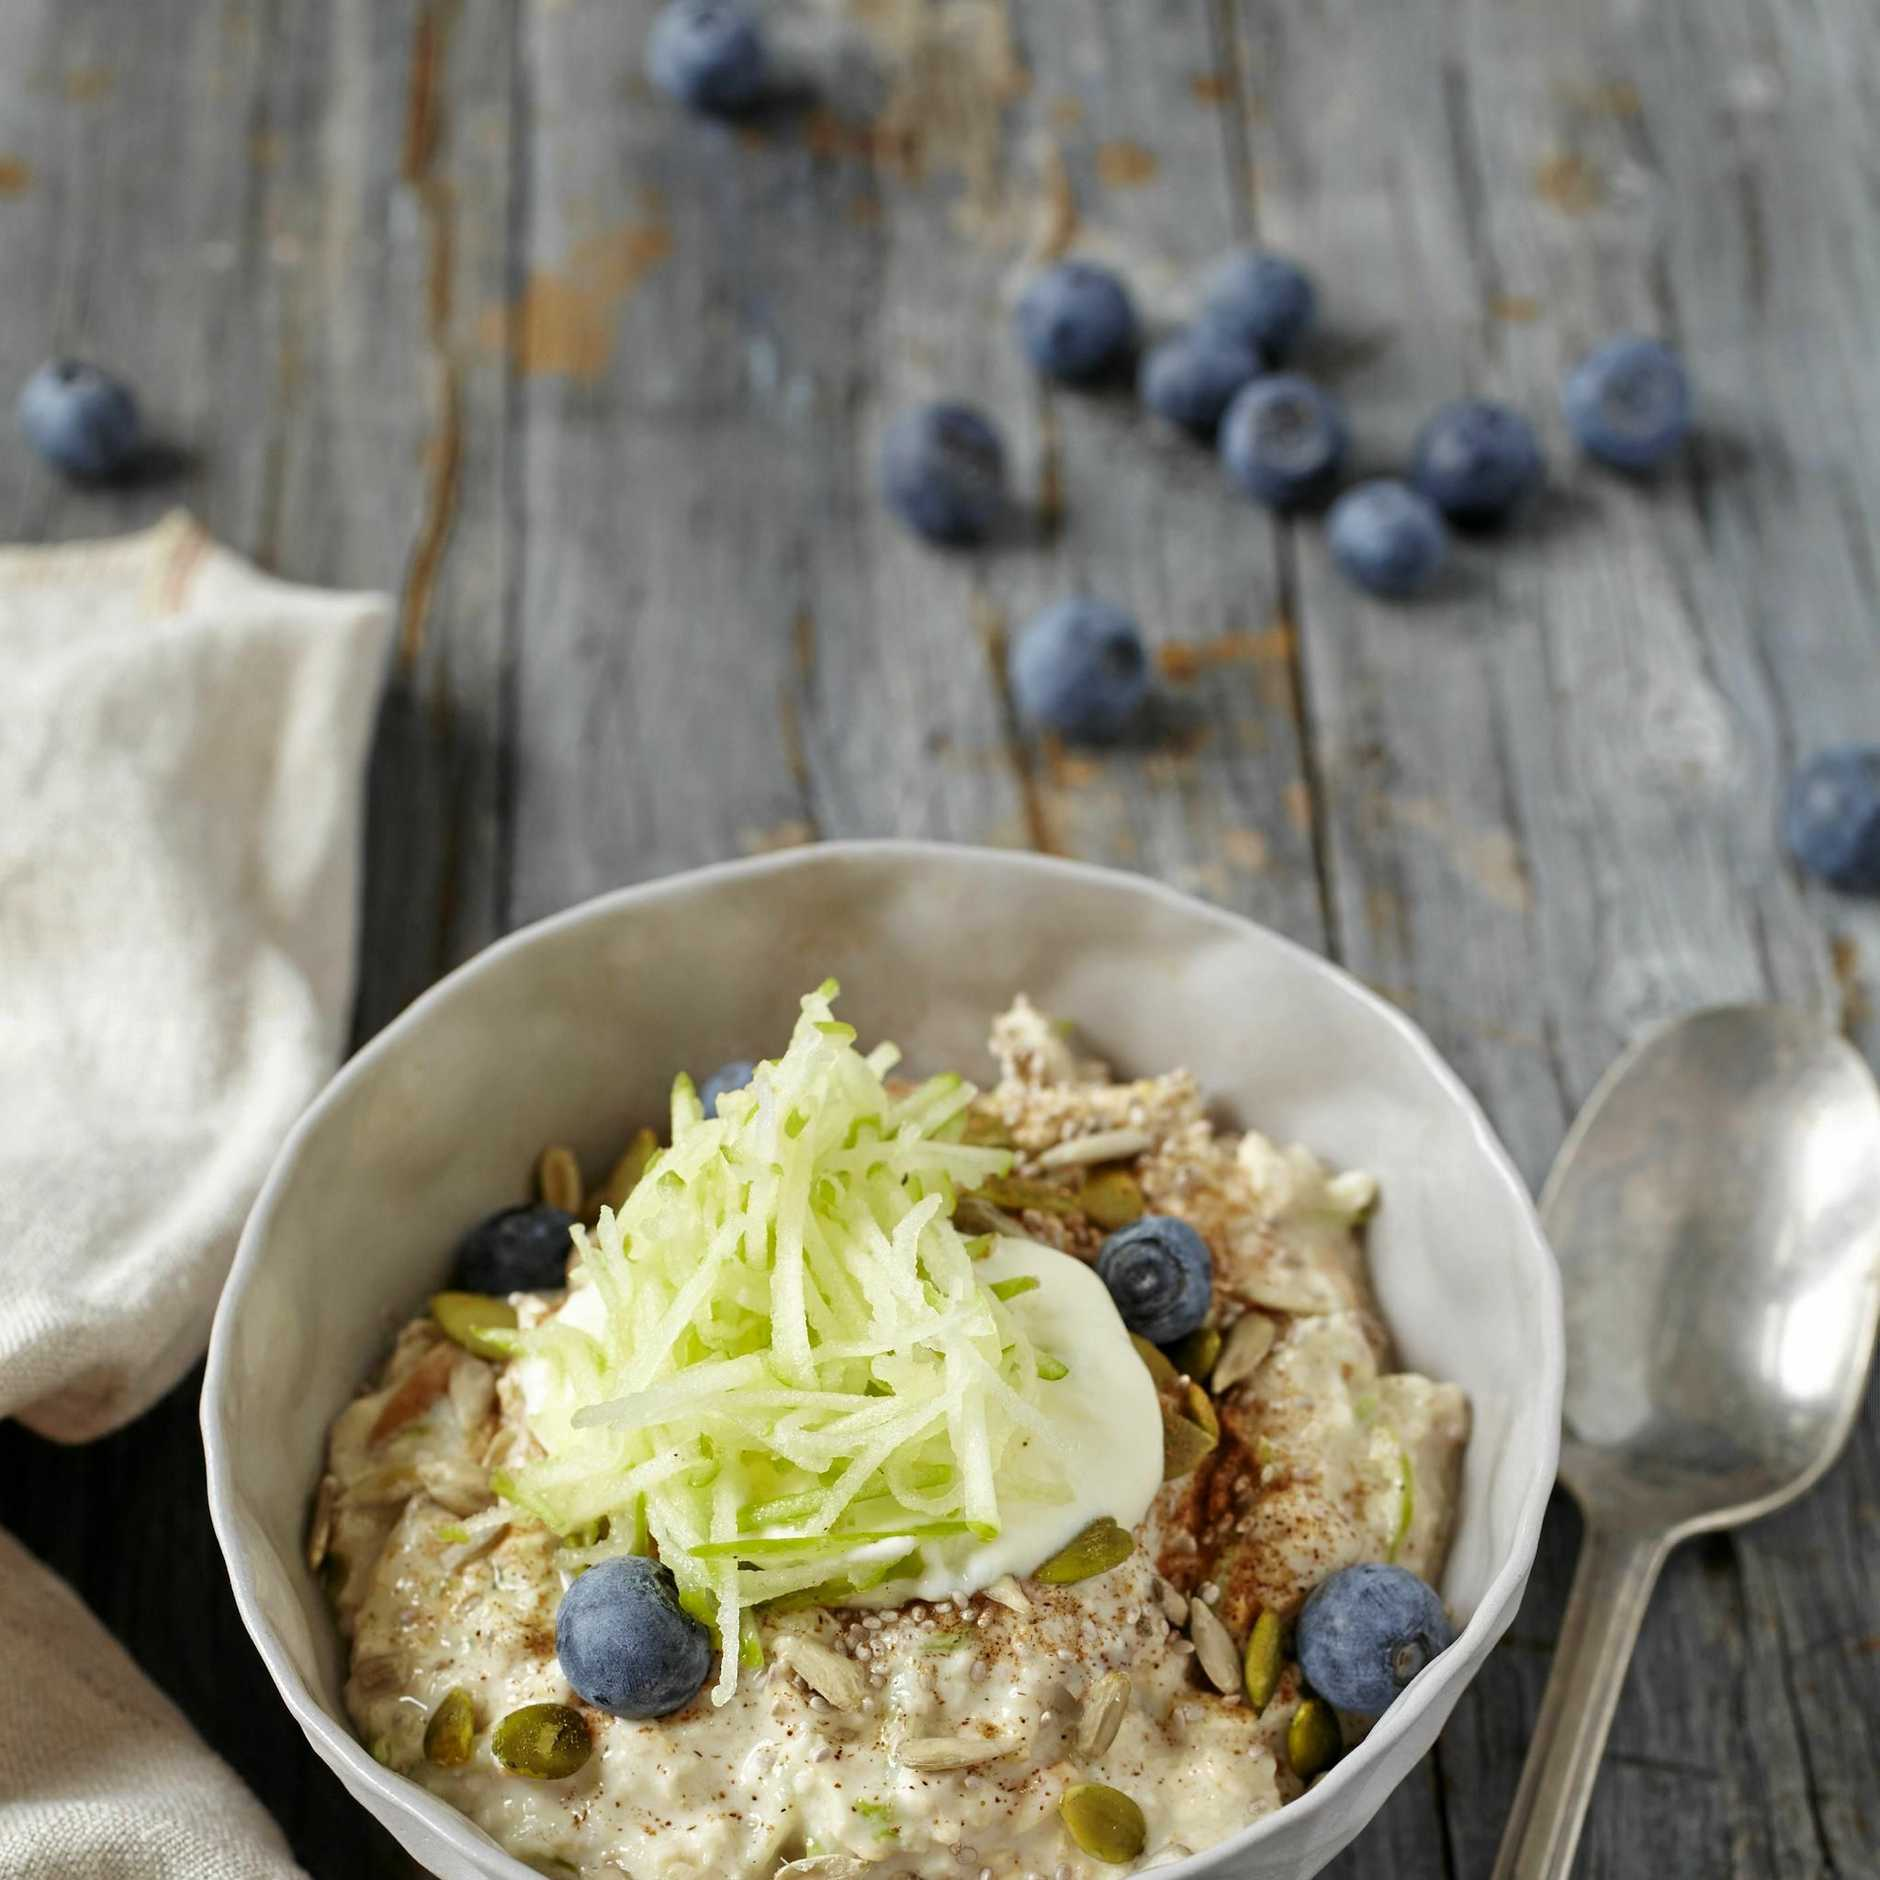 Bircher muesli with apple and blueberries.